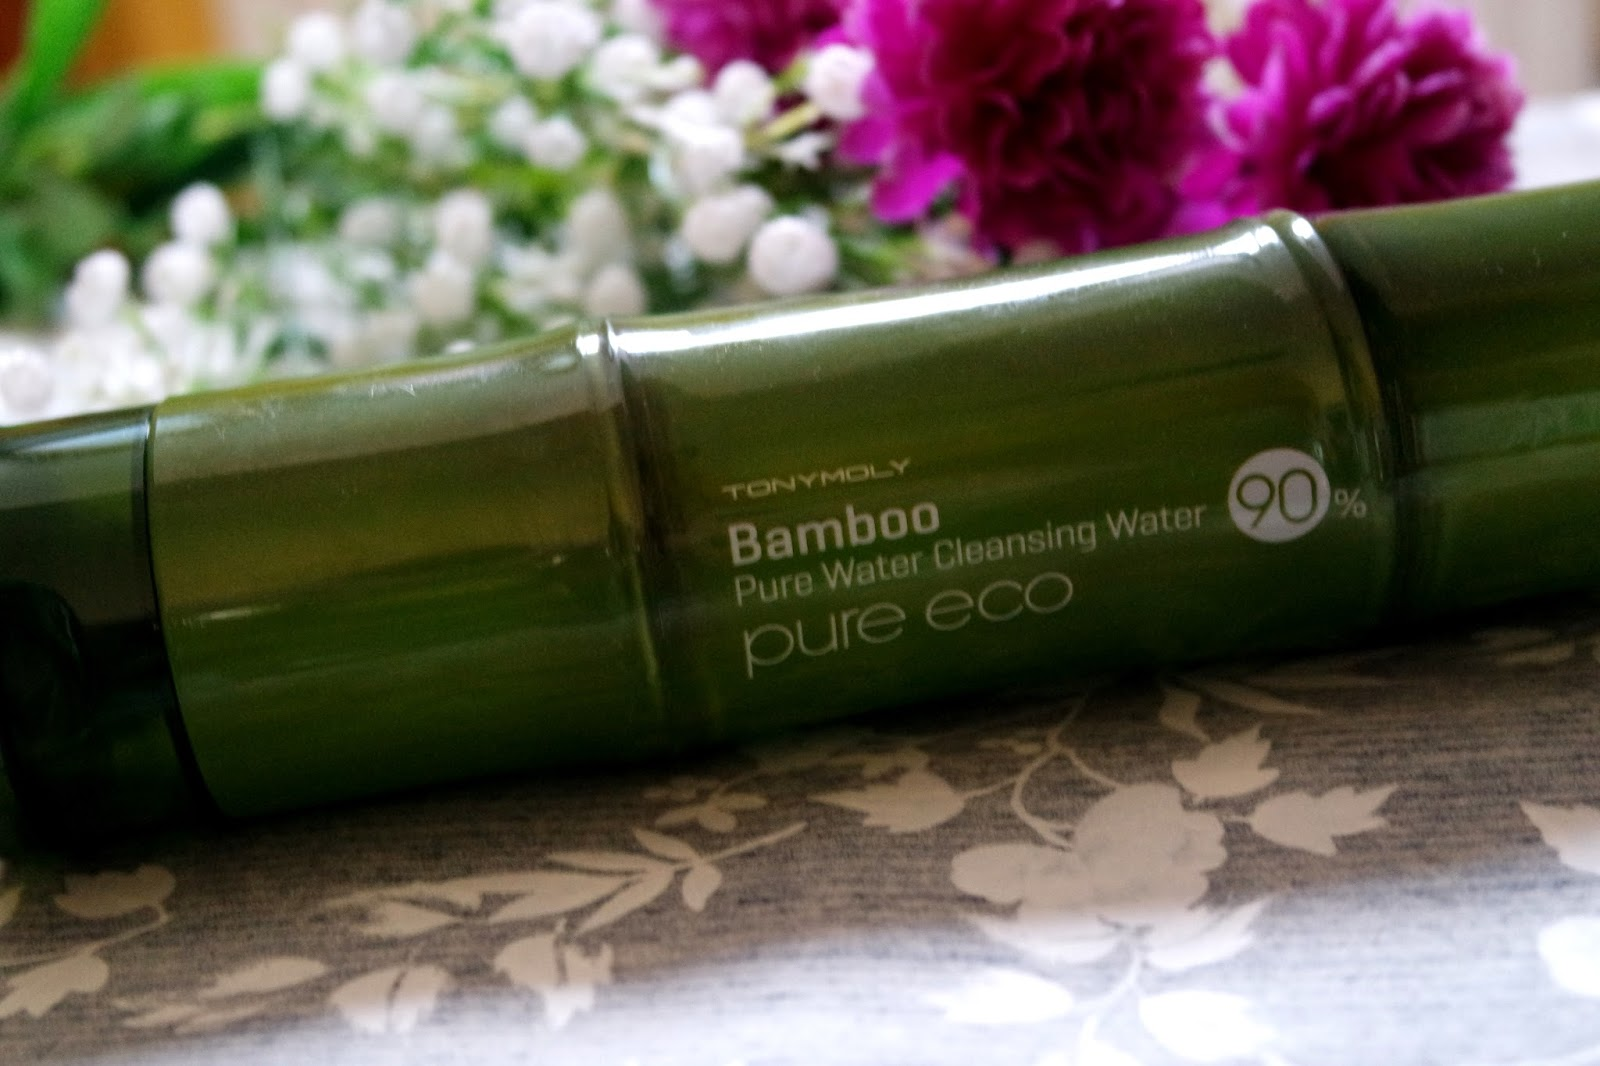 Tony Moly Bamboo No Wash Cleansing Water